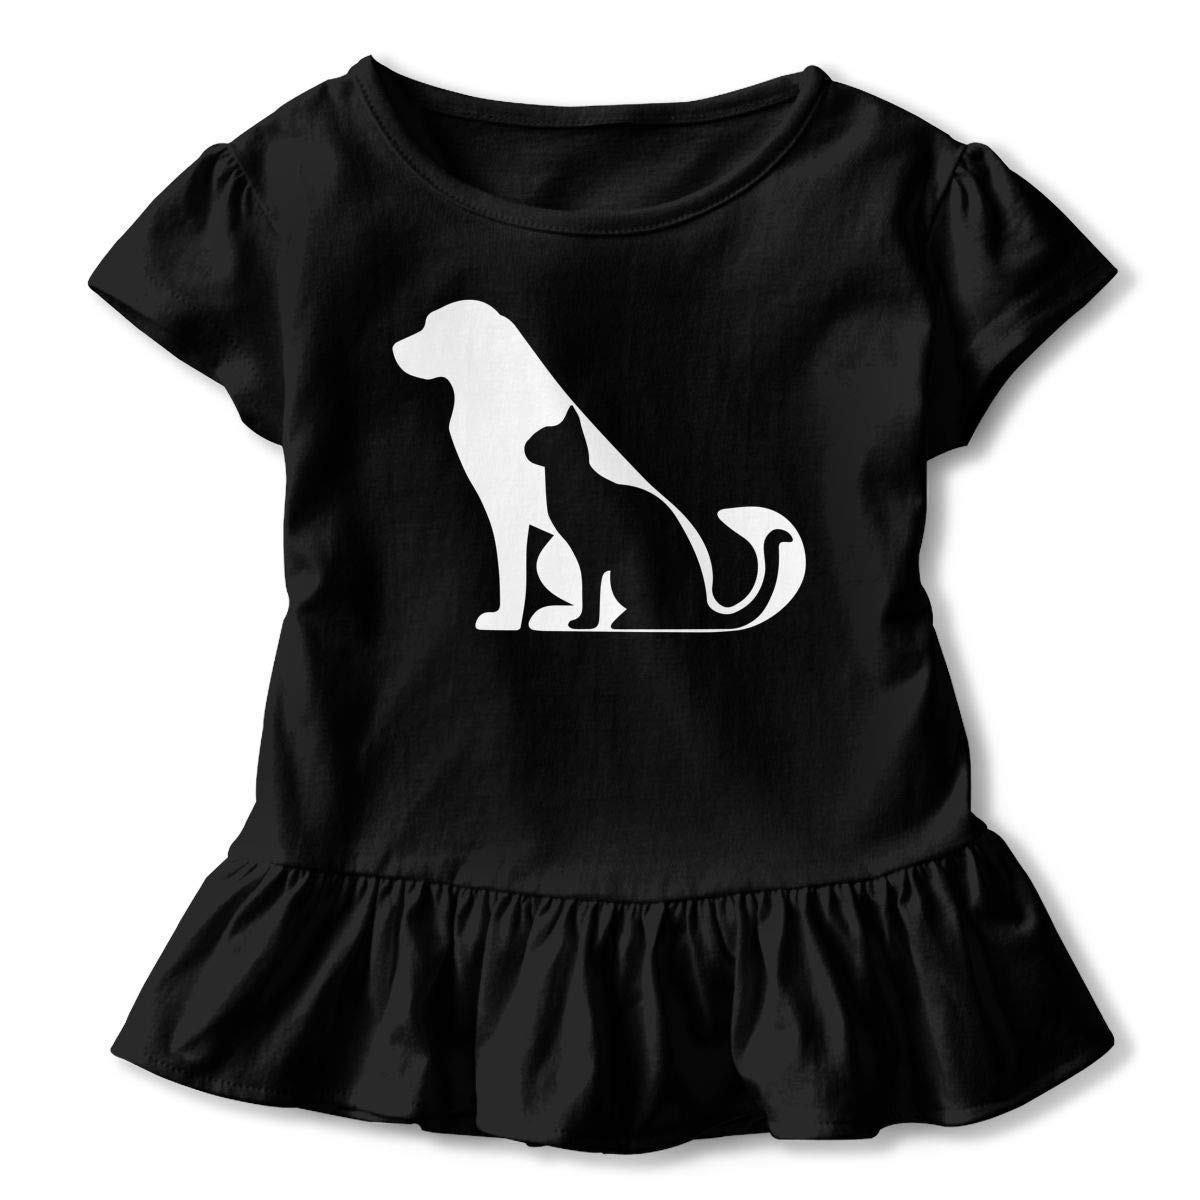 Life is Better with Dogs and Cats Kids Girls Short Sleeve T Shirts Ruffles Shirt Tee Jersey for 2-6T